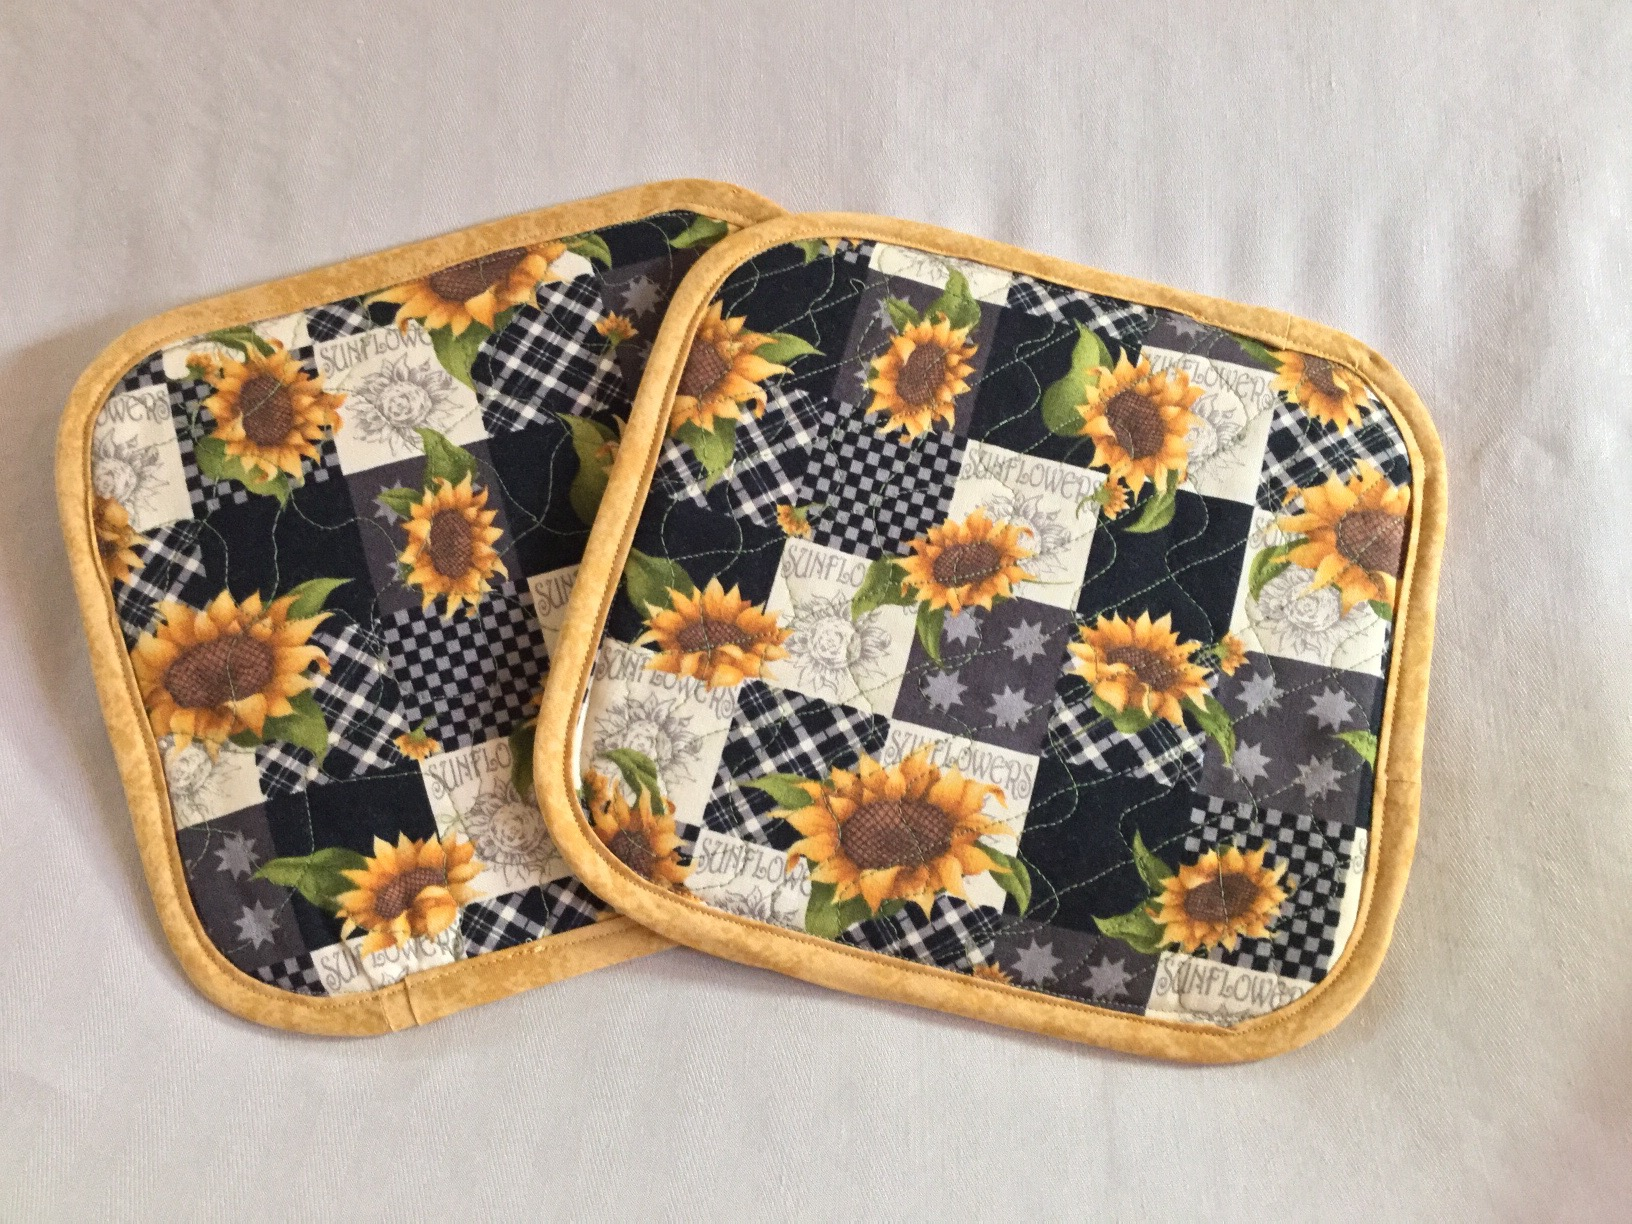 handmade quilted potholders. How to Make Quilted Potholders with insulated batting. Make the best homemade potholders using this sewing tutorial for beginners.